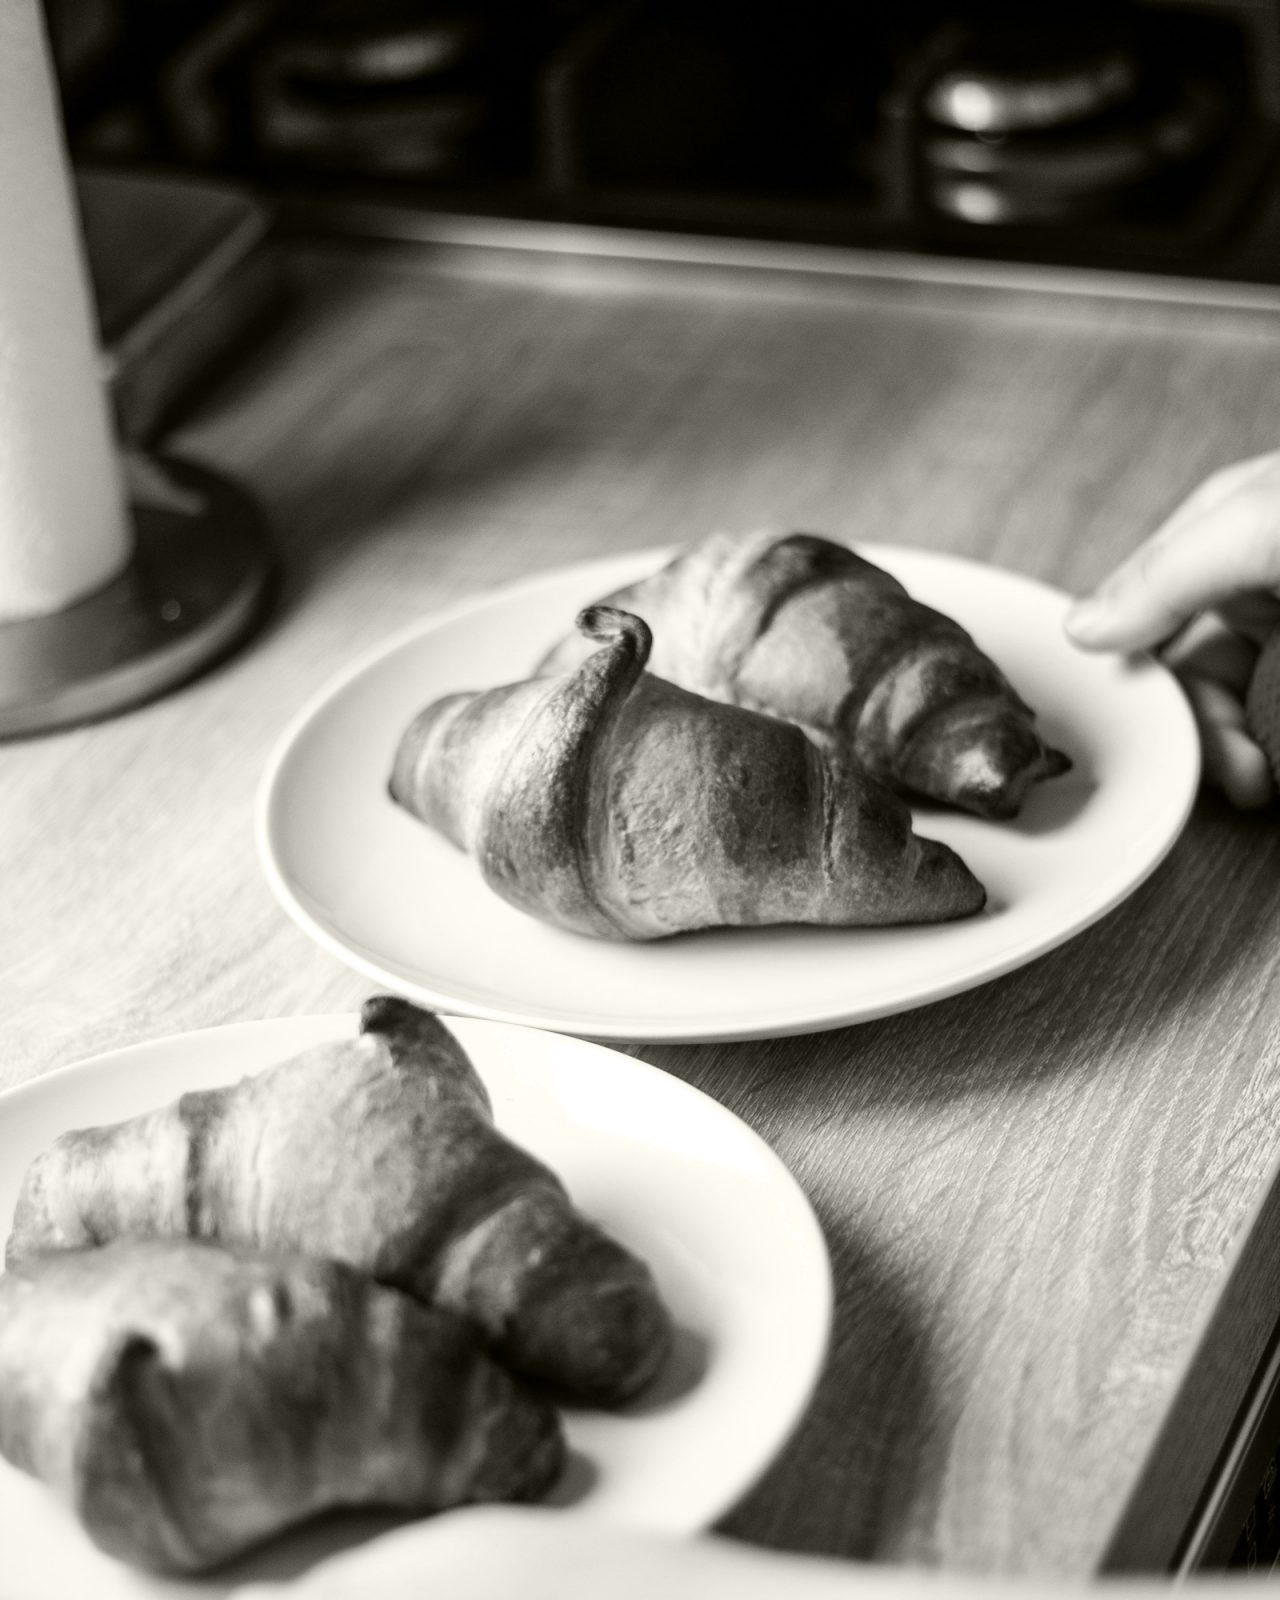 Black and white table with two plates of two croissants on each